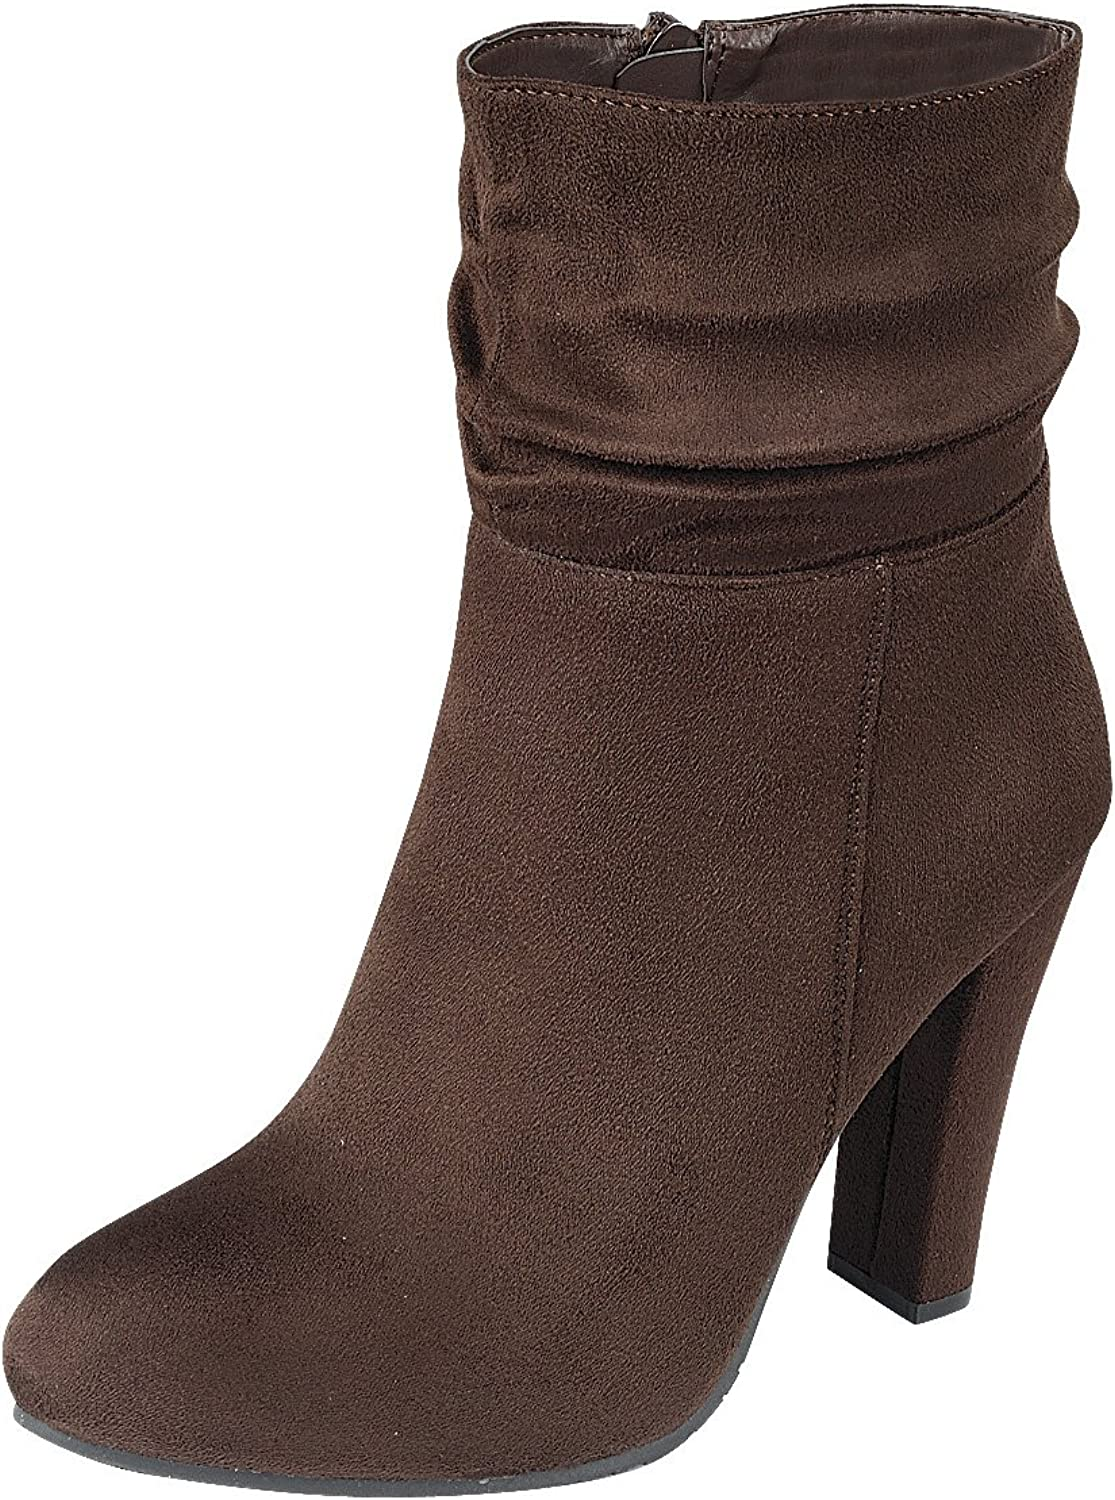 Cambridge Select Women's Slouch Round Toe Chunky Wrapped Heel Ankle Bootie